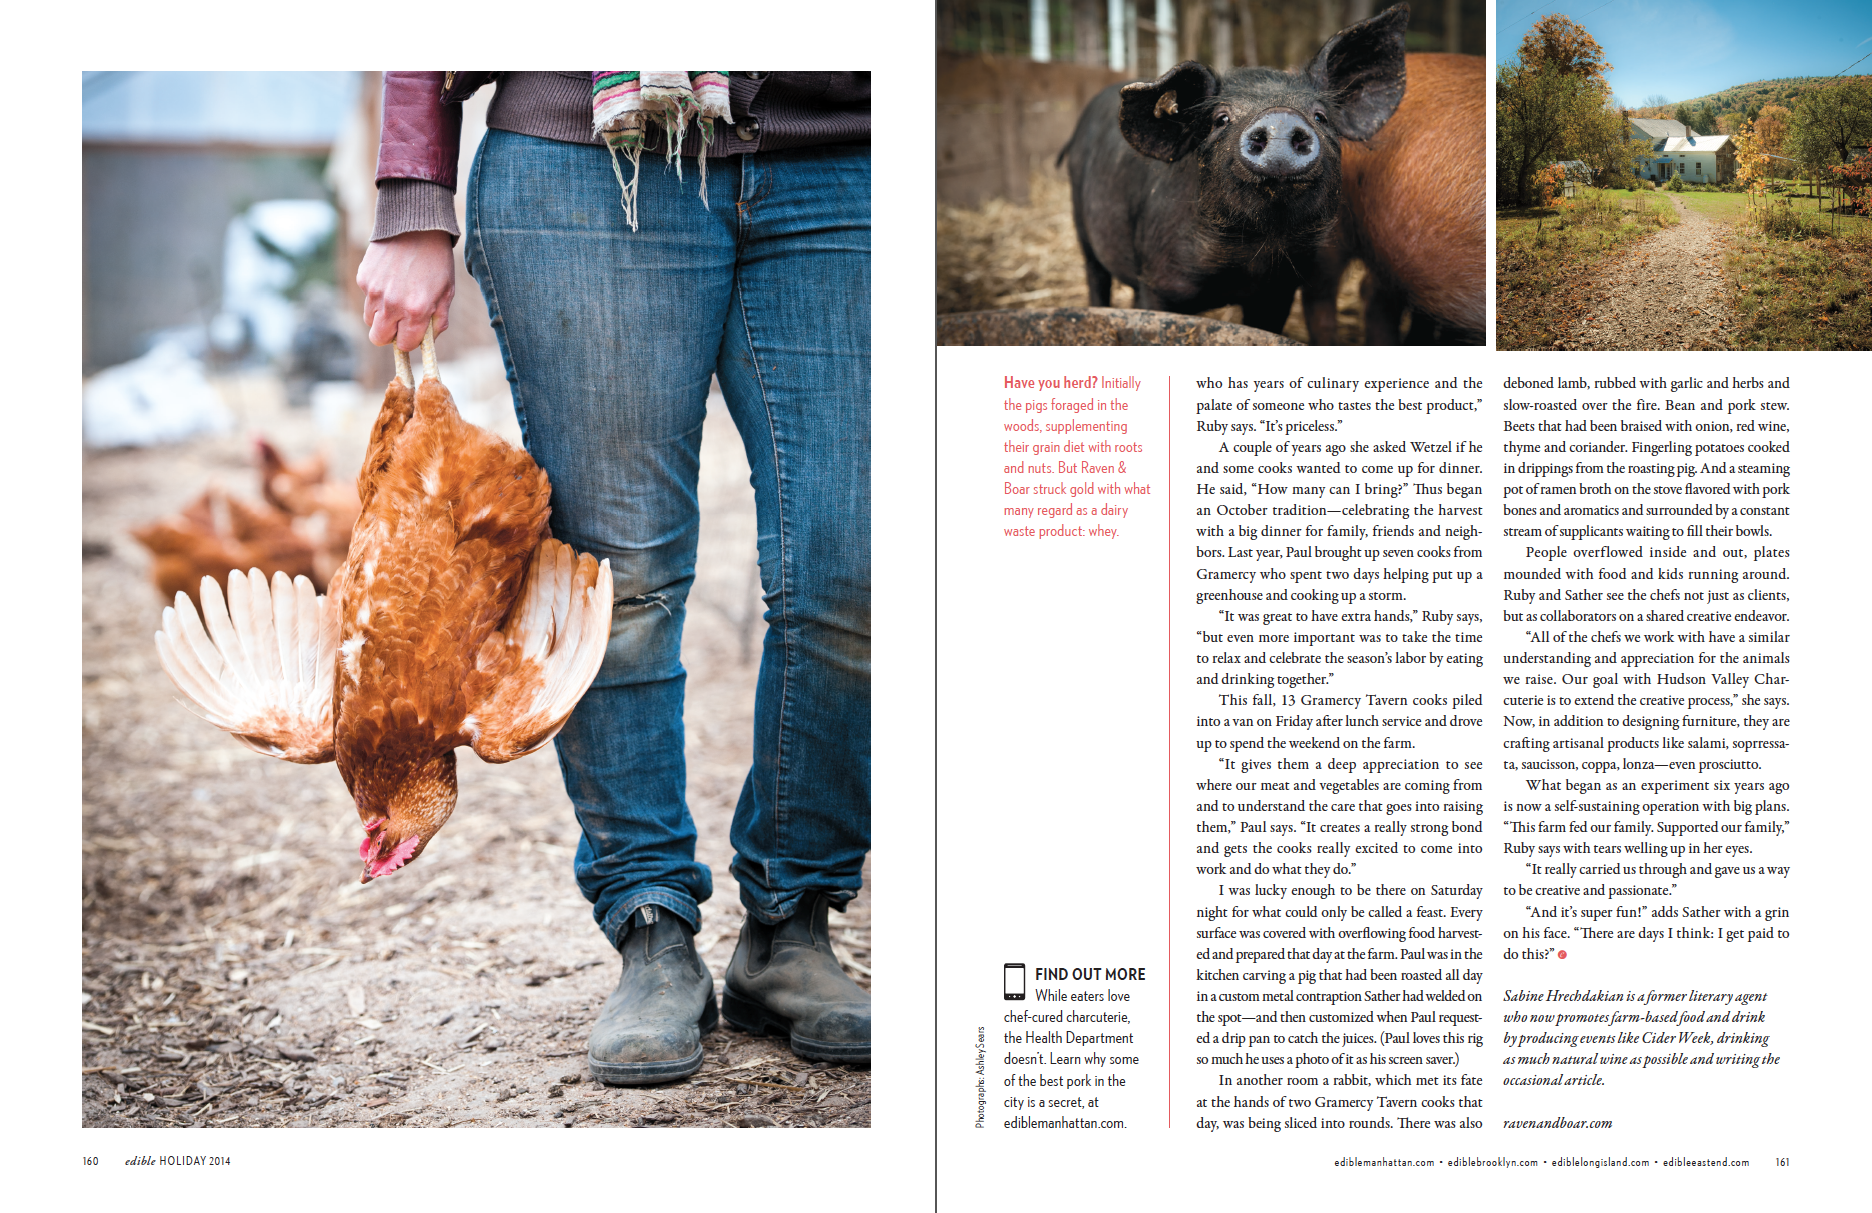 Farming By Design (4 of 4)